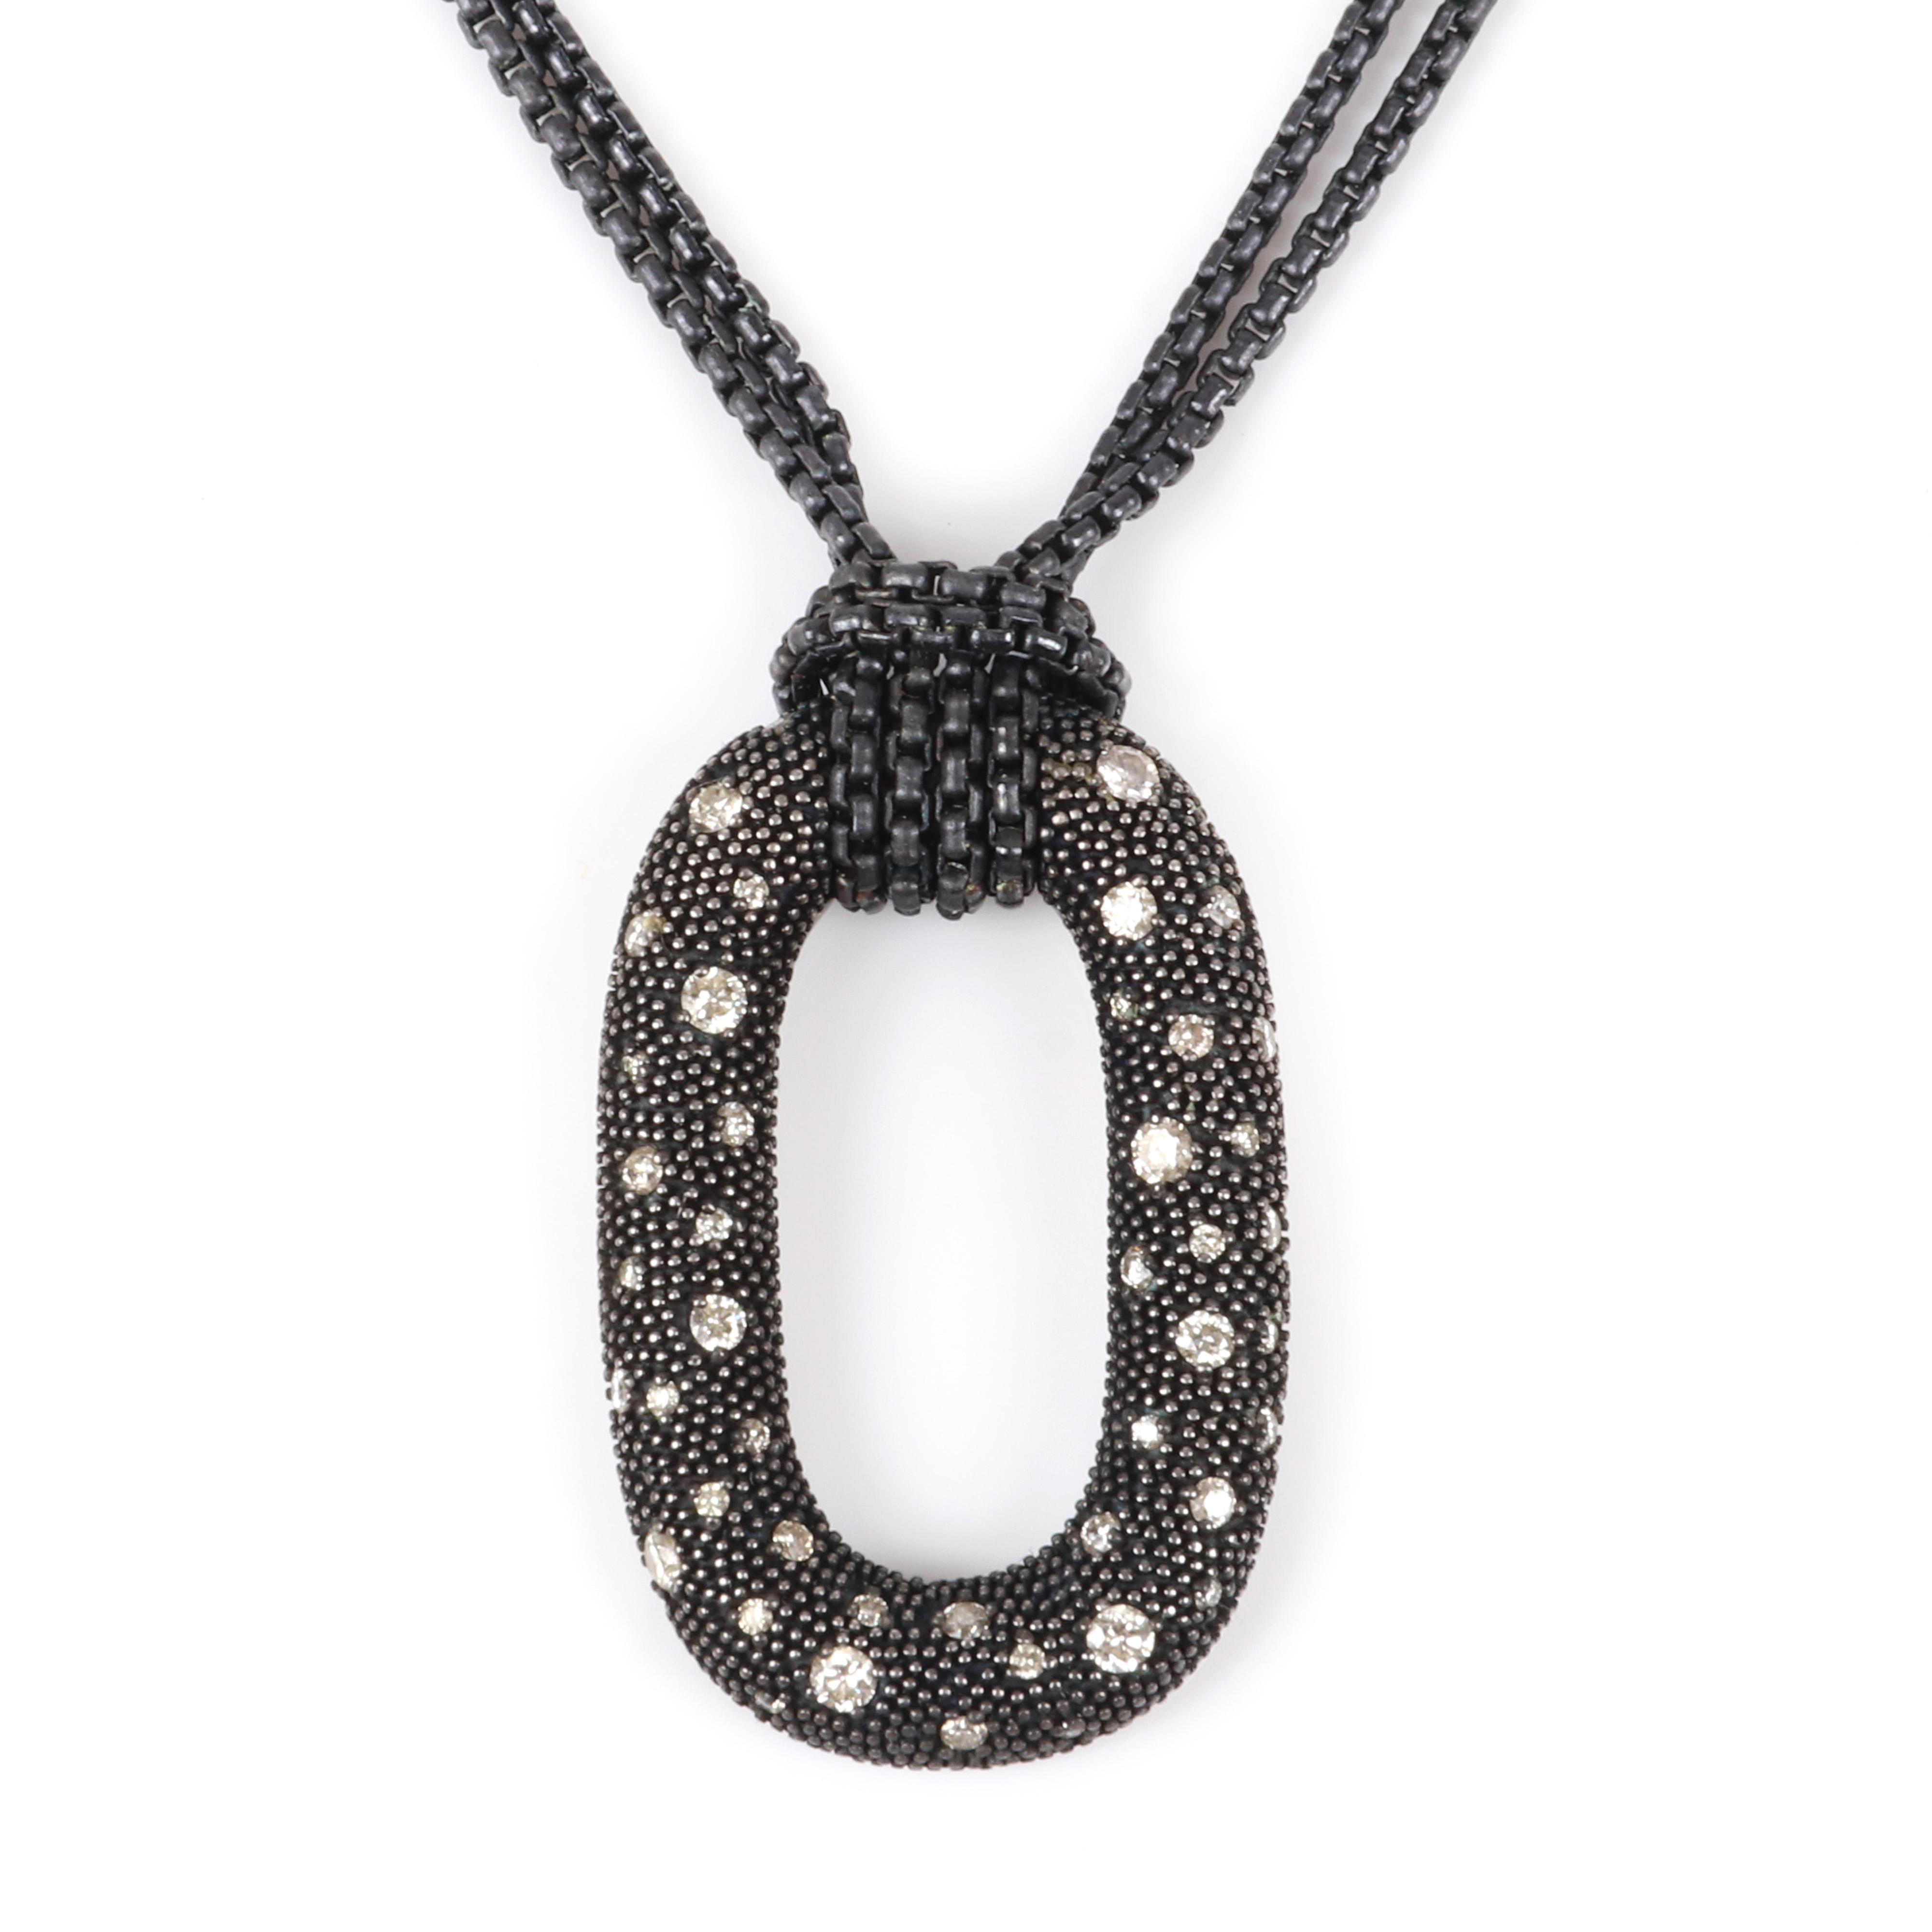 "David Yurman DY 925 sterling silver and diamond Midnight Melange open oval pendant on black patinated double chain necklace. 18""L. 1 1/2"" pendant."